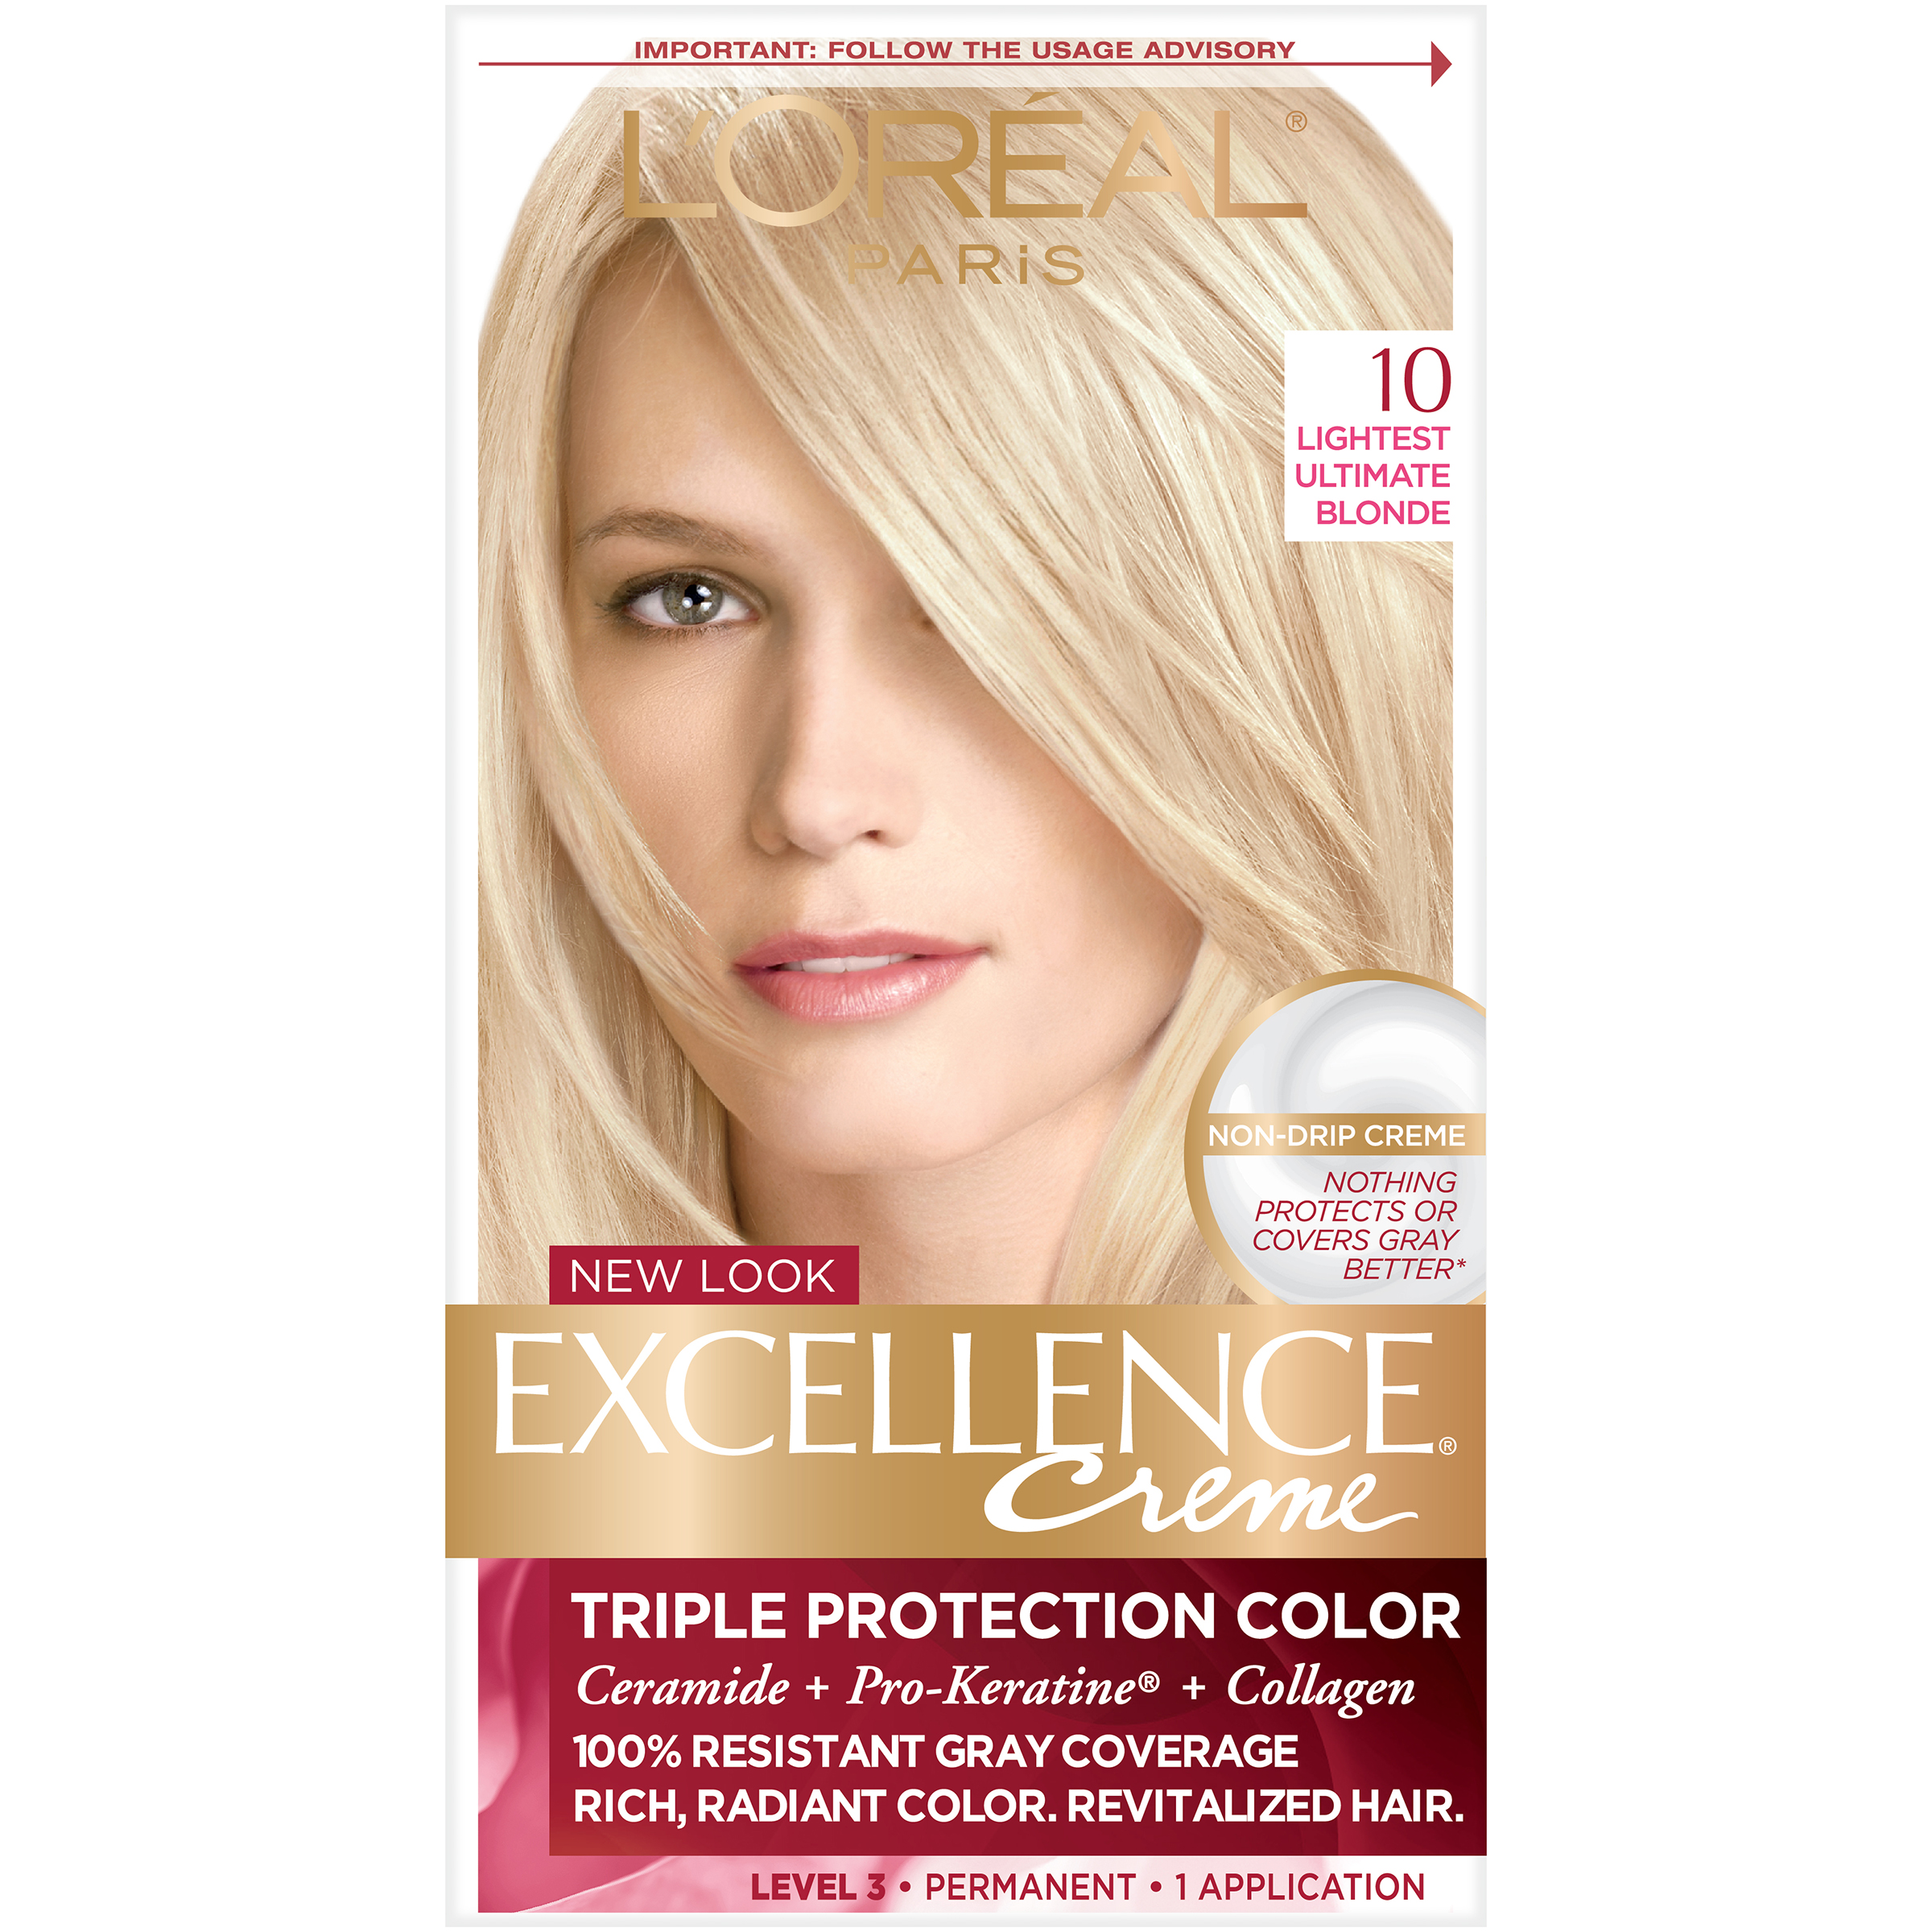 Loreal Excellence Triple Protection Hair Color Creme 10 Lightest